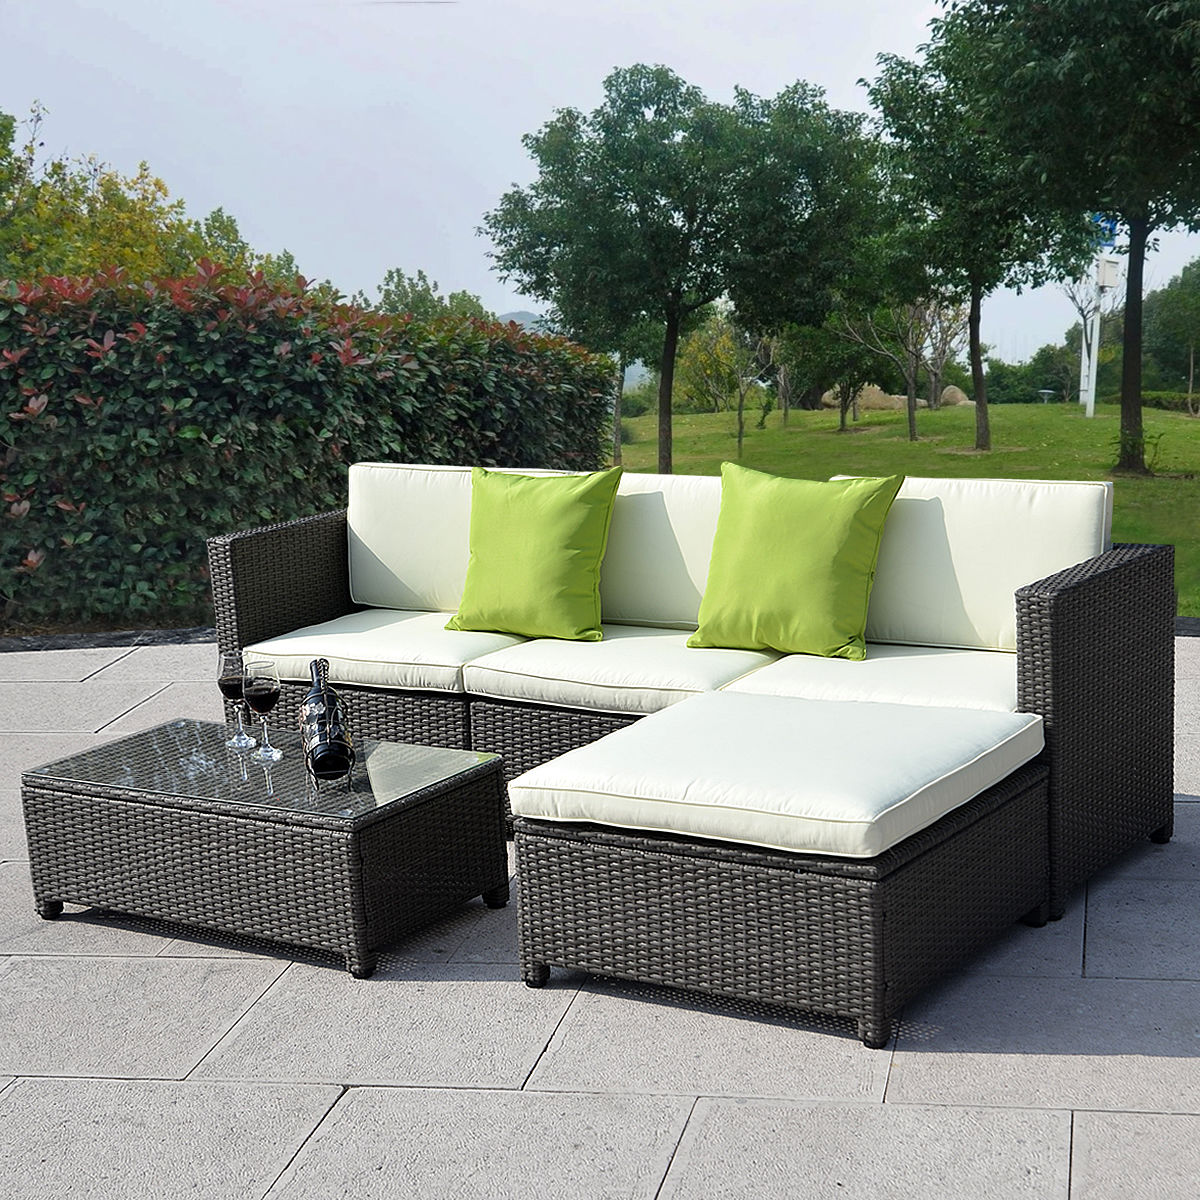 Outdoor patio wicker sofa set 5pc pe rattan for I furniture outdoor furniture